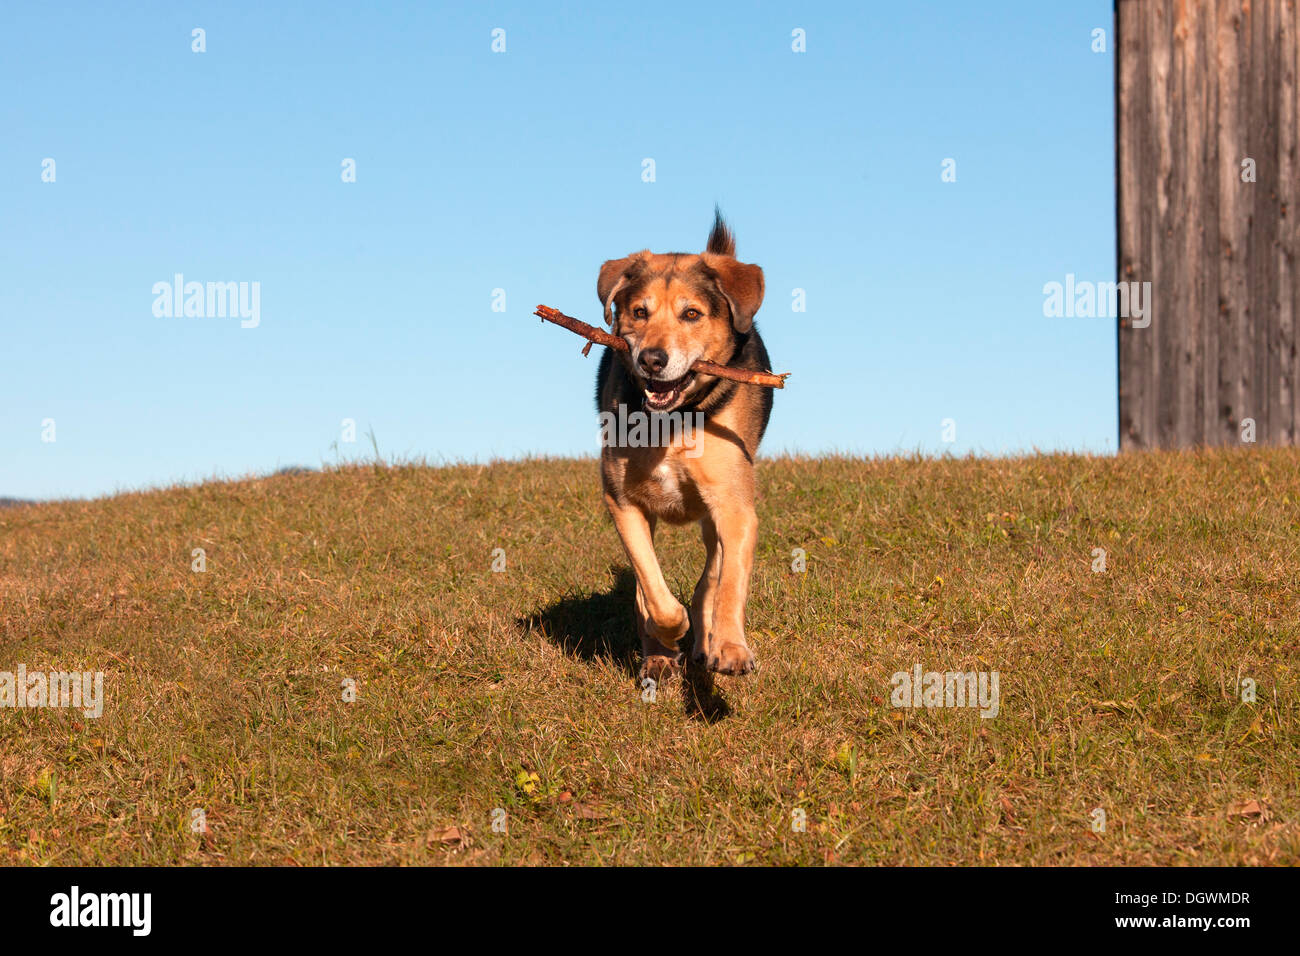 Mongrel, crossbreed of German Shepherd and Bernese Mountain Dog, retrieving a stick - Stock Image